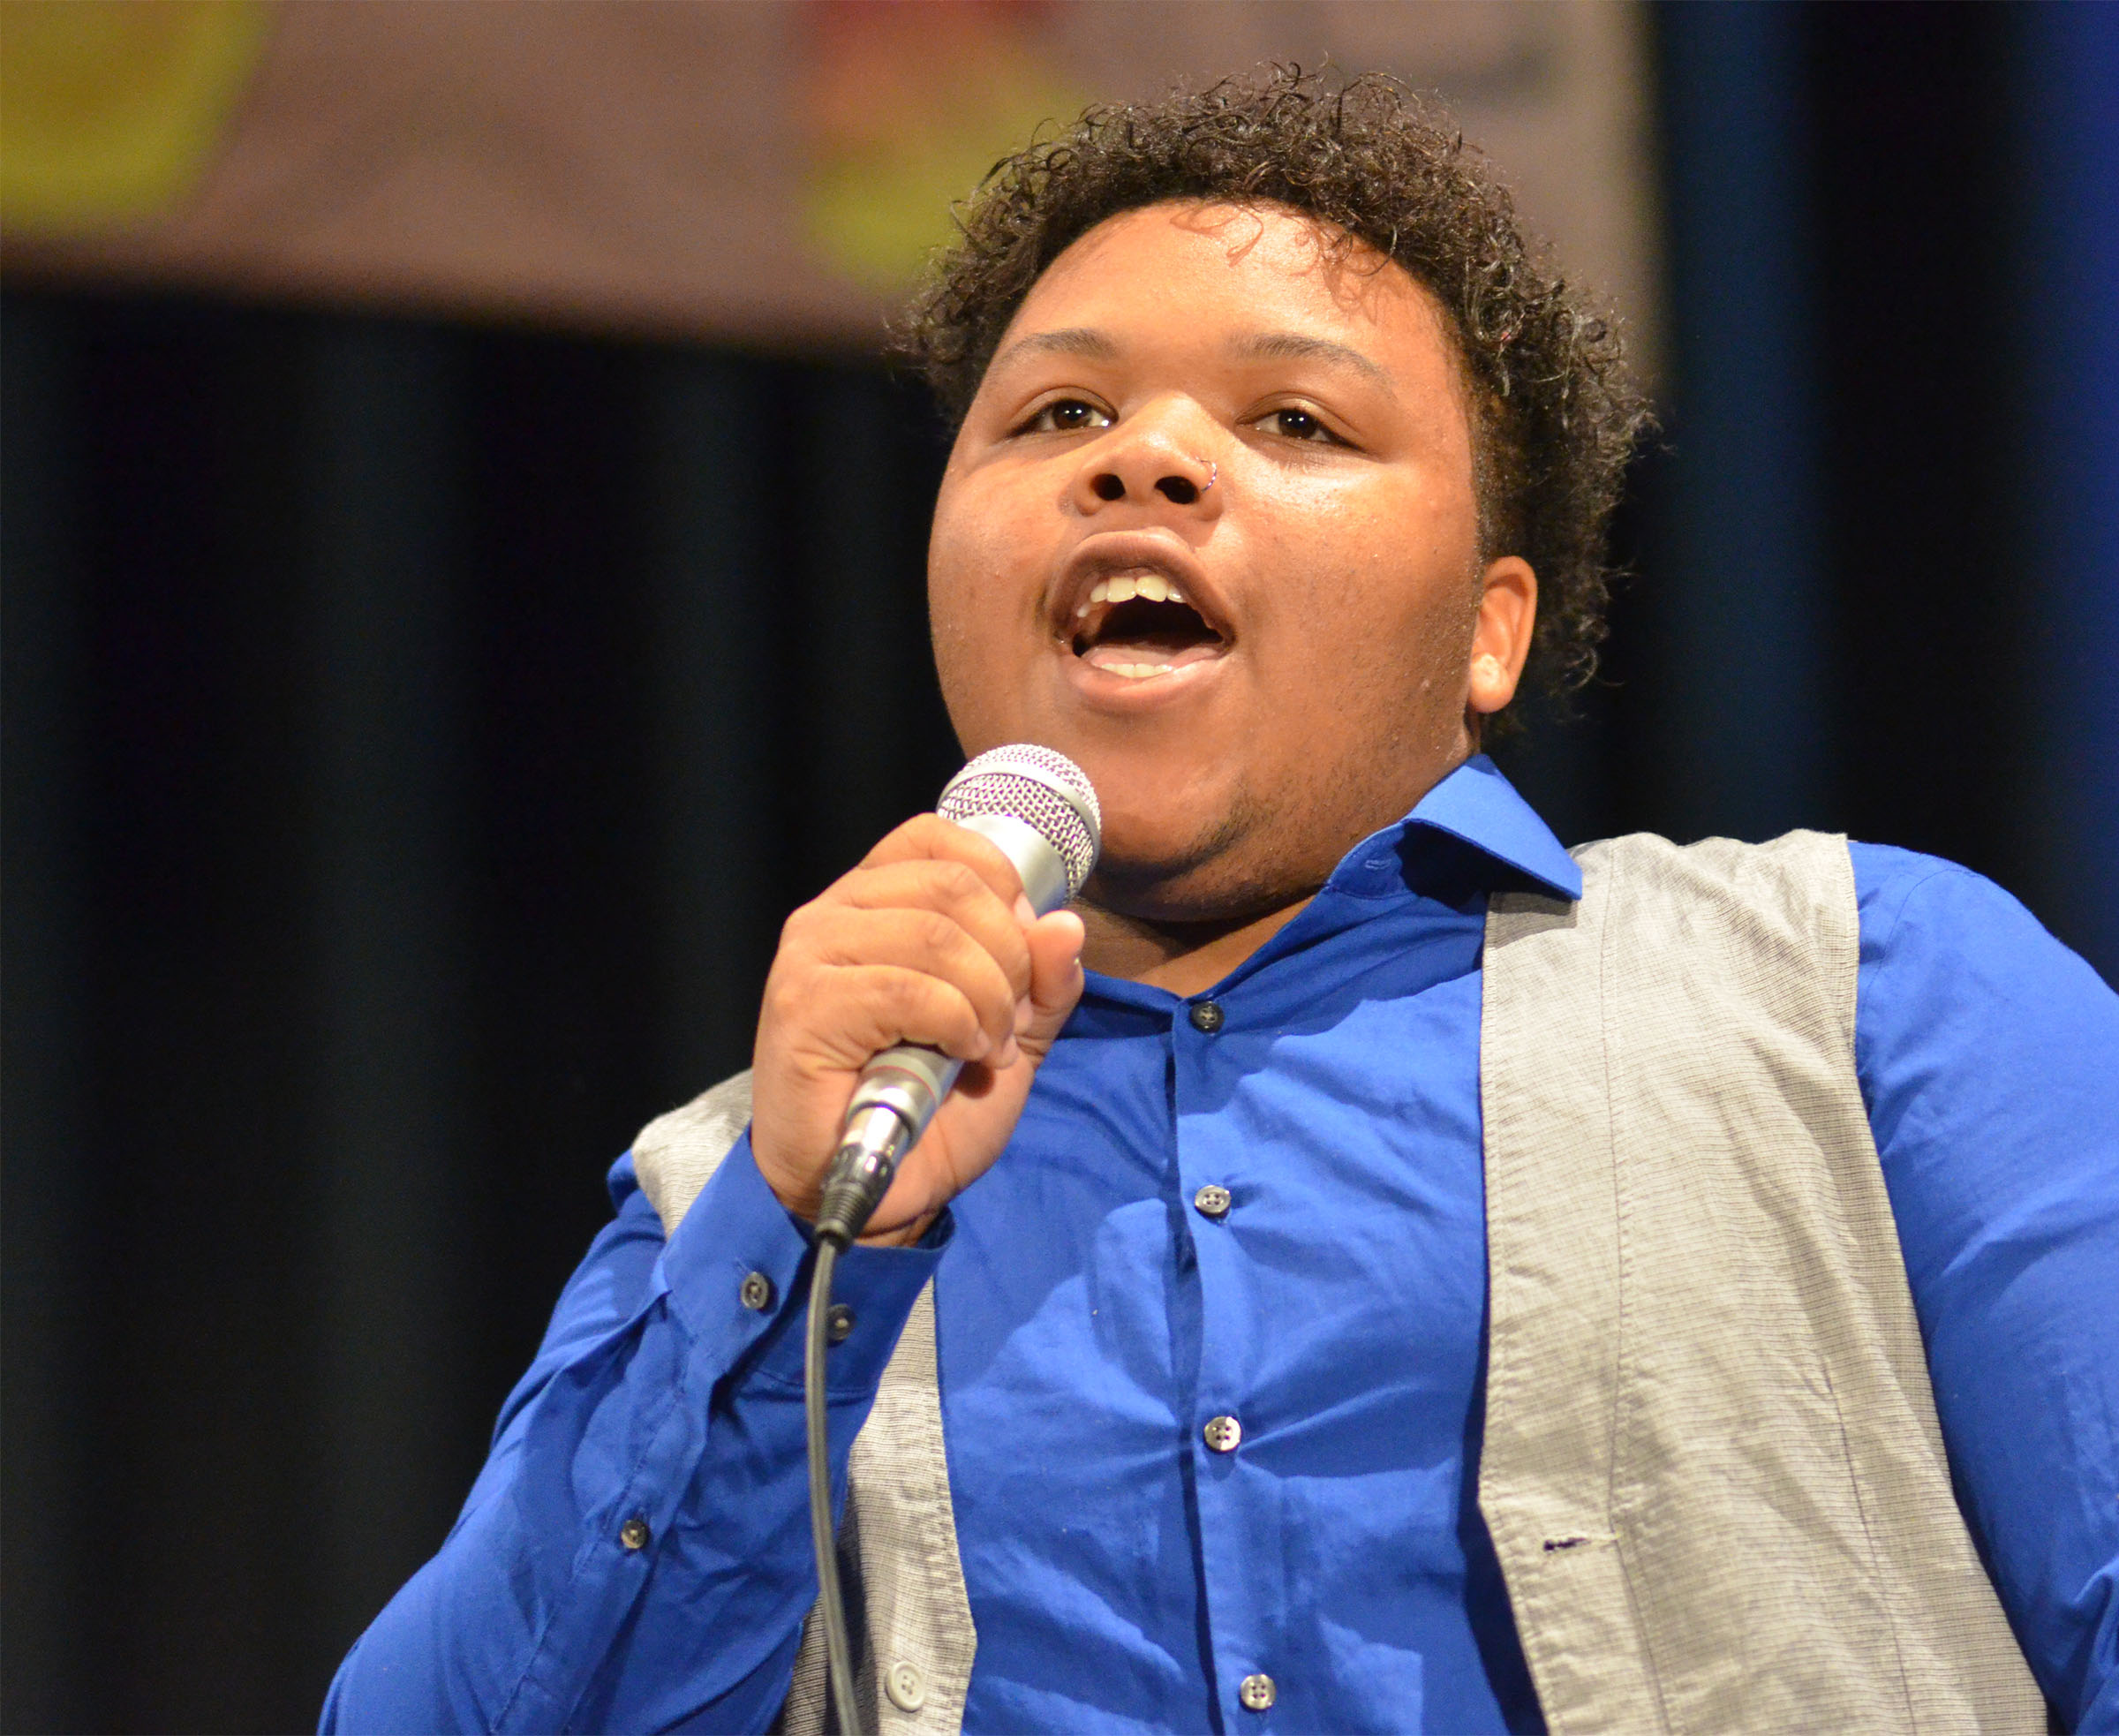 CHS junior Darius Wright sings.